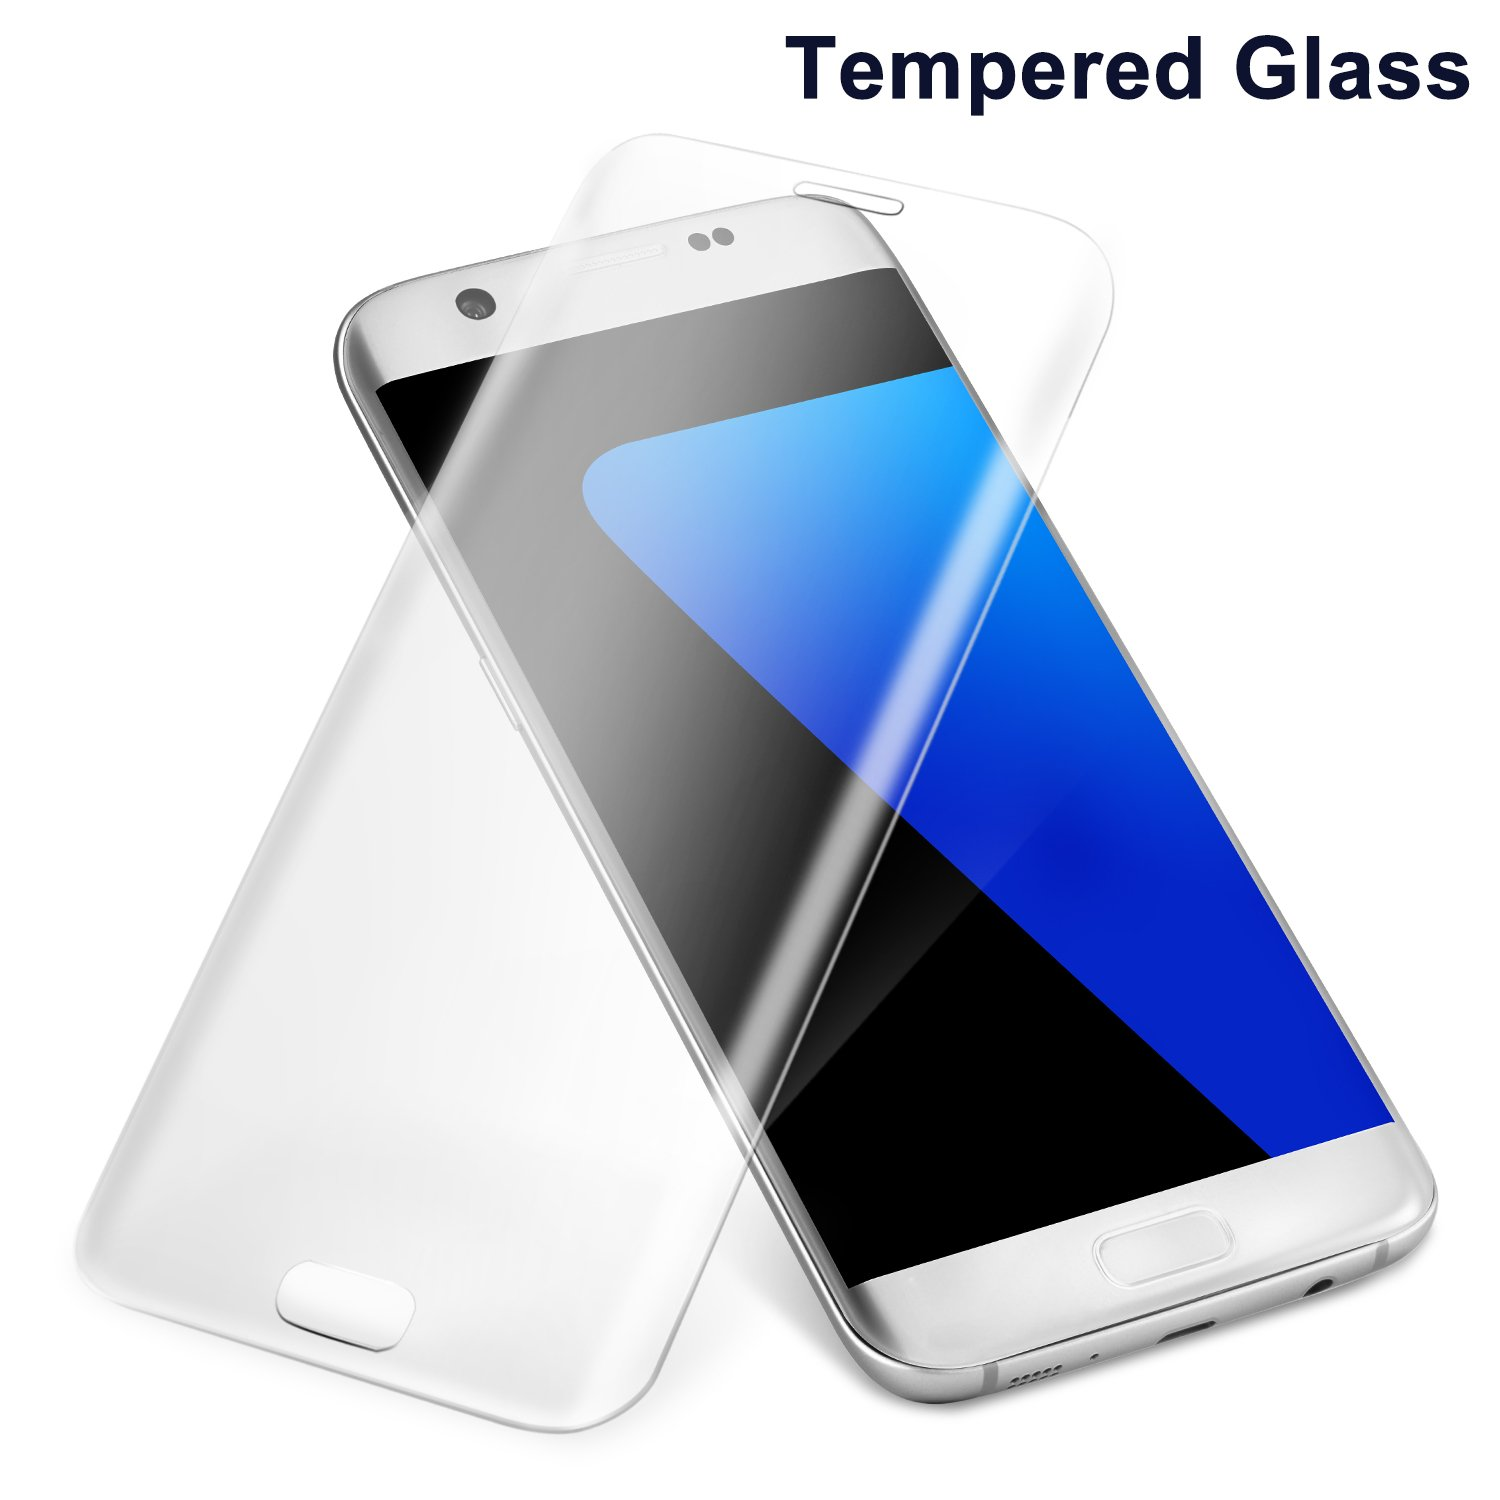 Amazon Goodsail Samsung Galaxy S7 Edge Screen Protector Tempered Glass Screen Protector with Full Coverage 9H Hardness HD Clear Transparent Cell